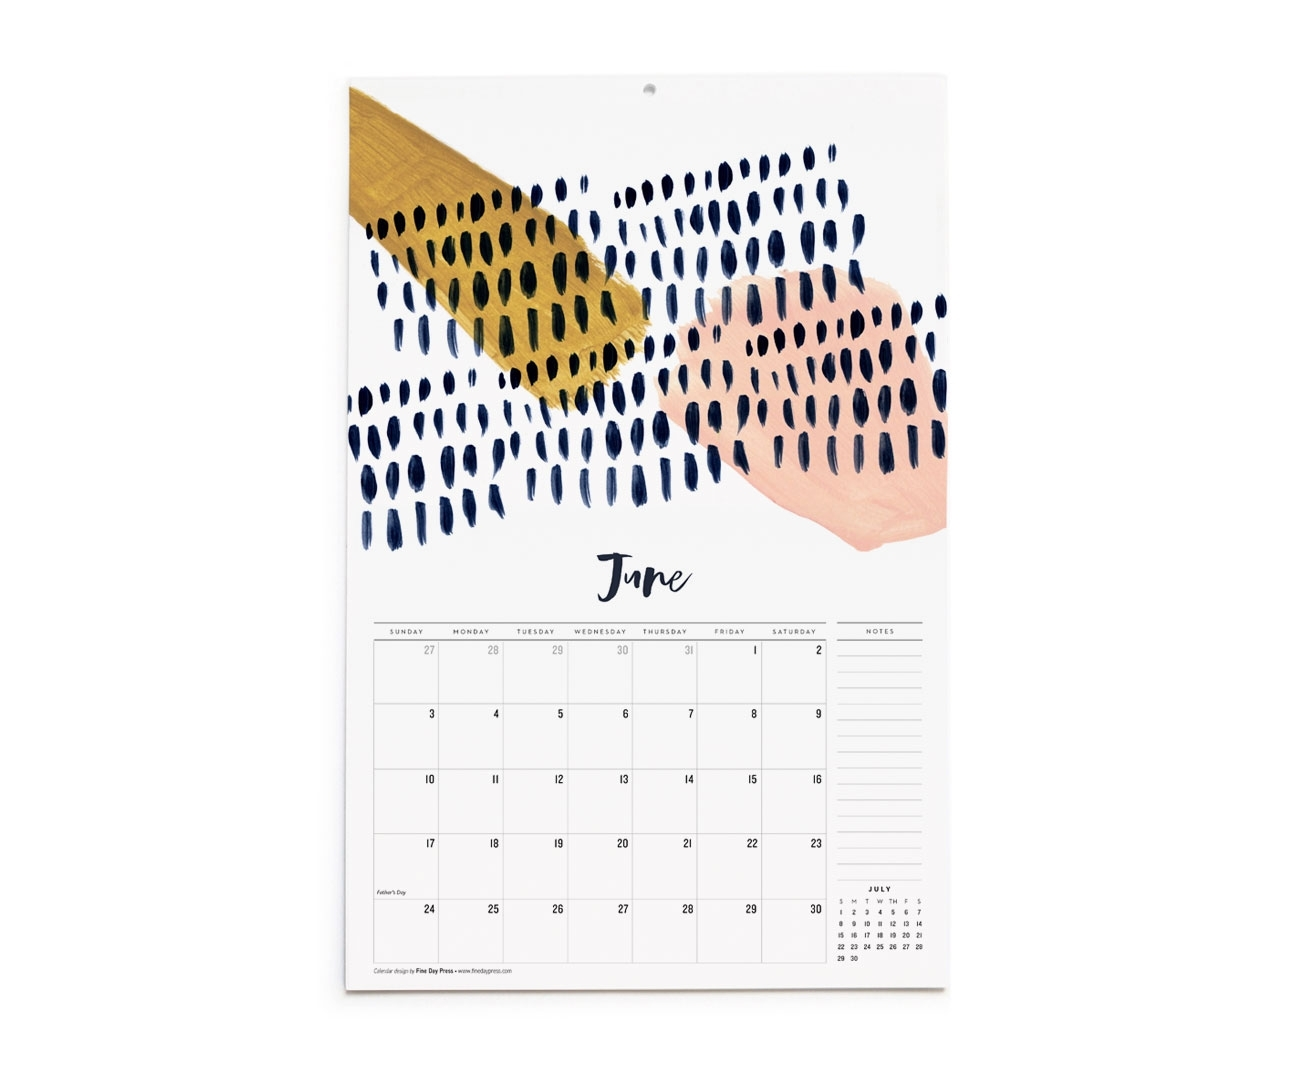 2018 Abstract Art Wall Calendar – Fine Day Press With Best And Newest Abstract Calendar Art Wall (View 8 of 20)